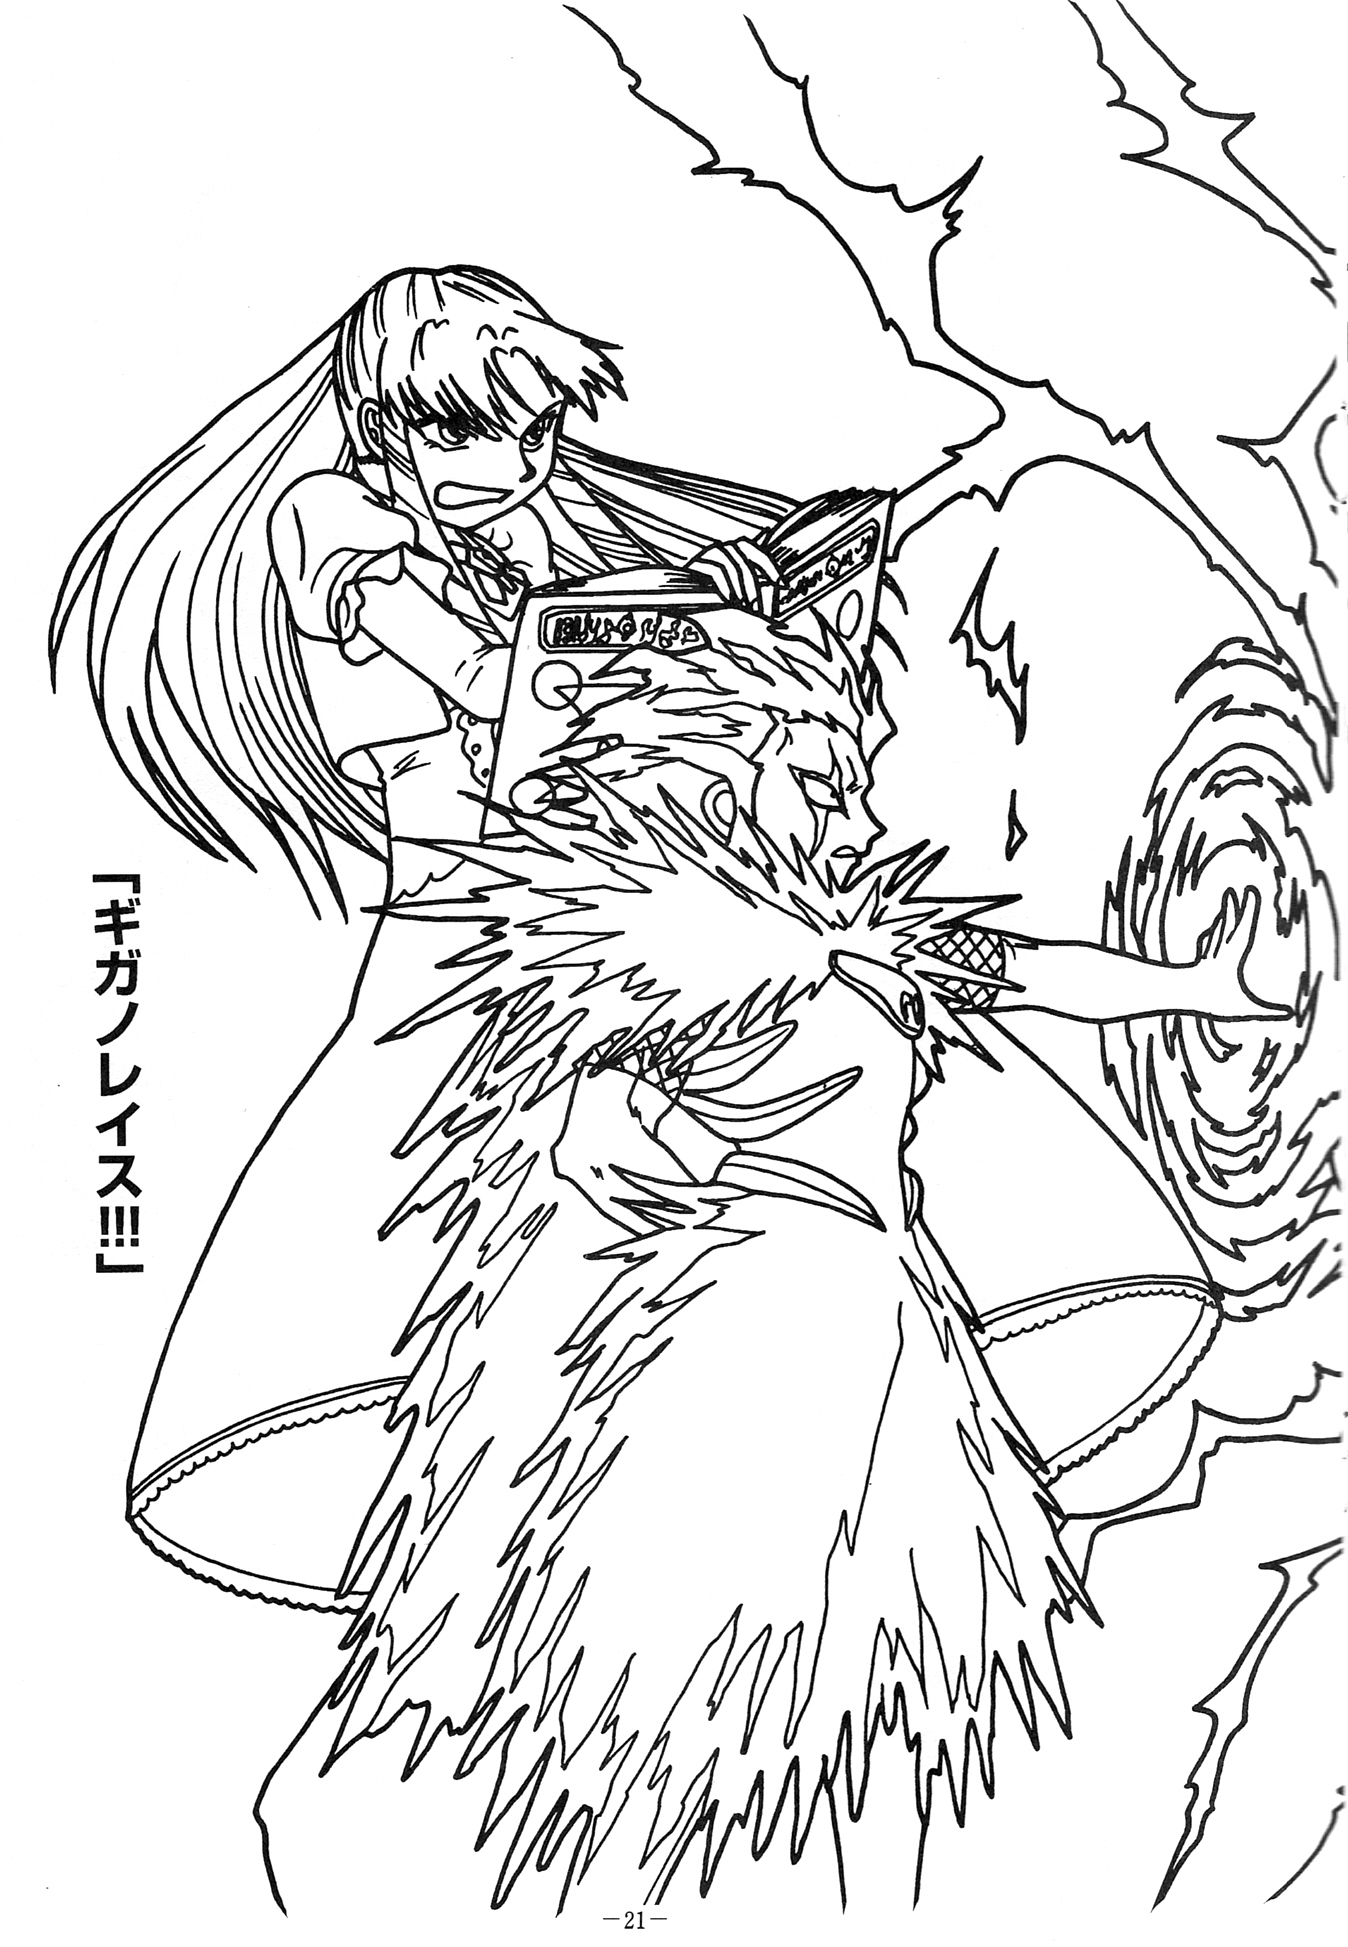 zatch bell coloring pages | Coloring Page No Gossip Coloring Pages